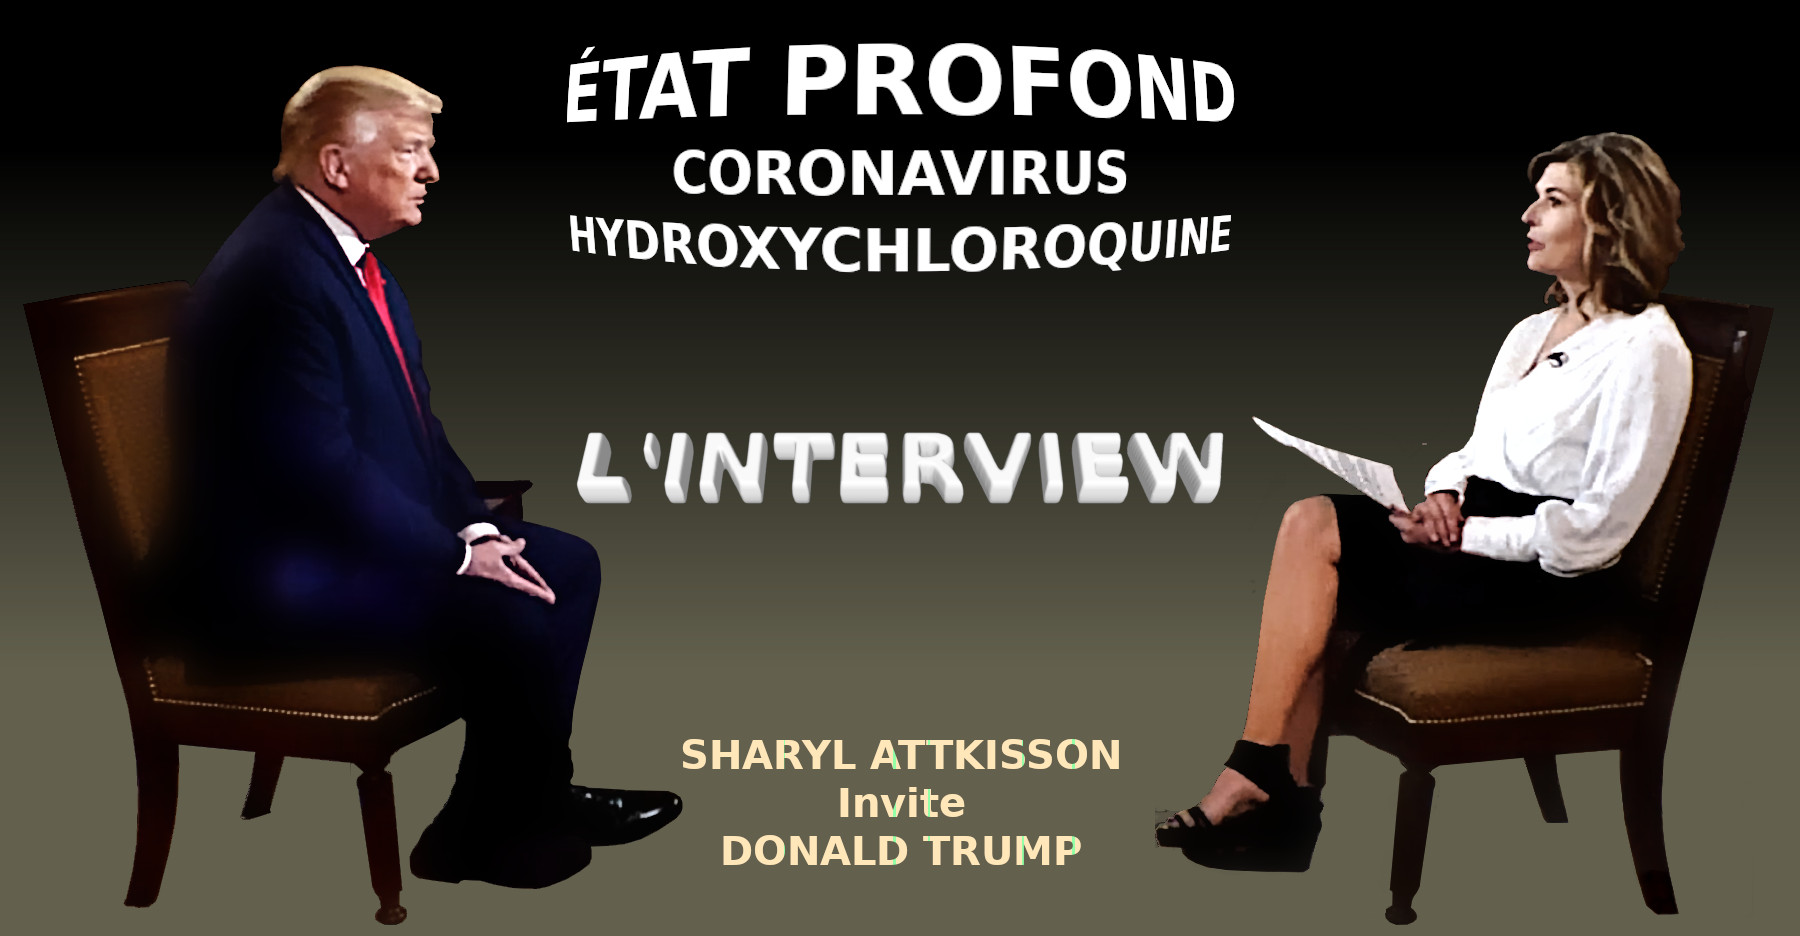 Interview de Donald Trump avec Sharyl Attkisson